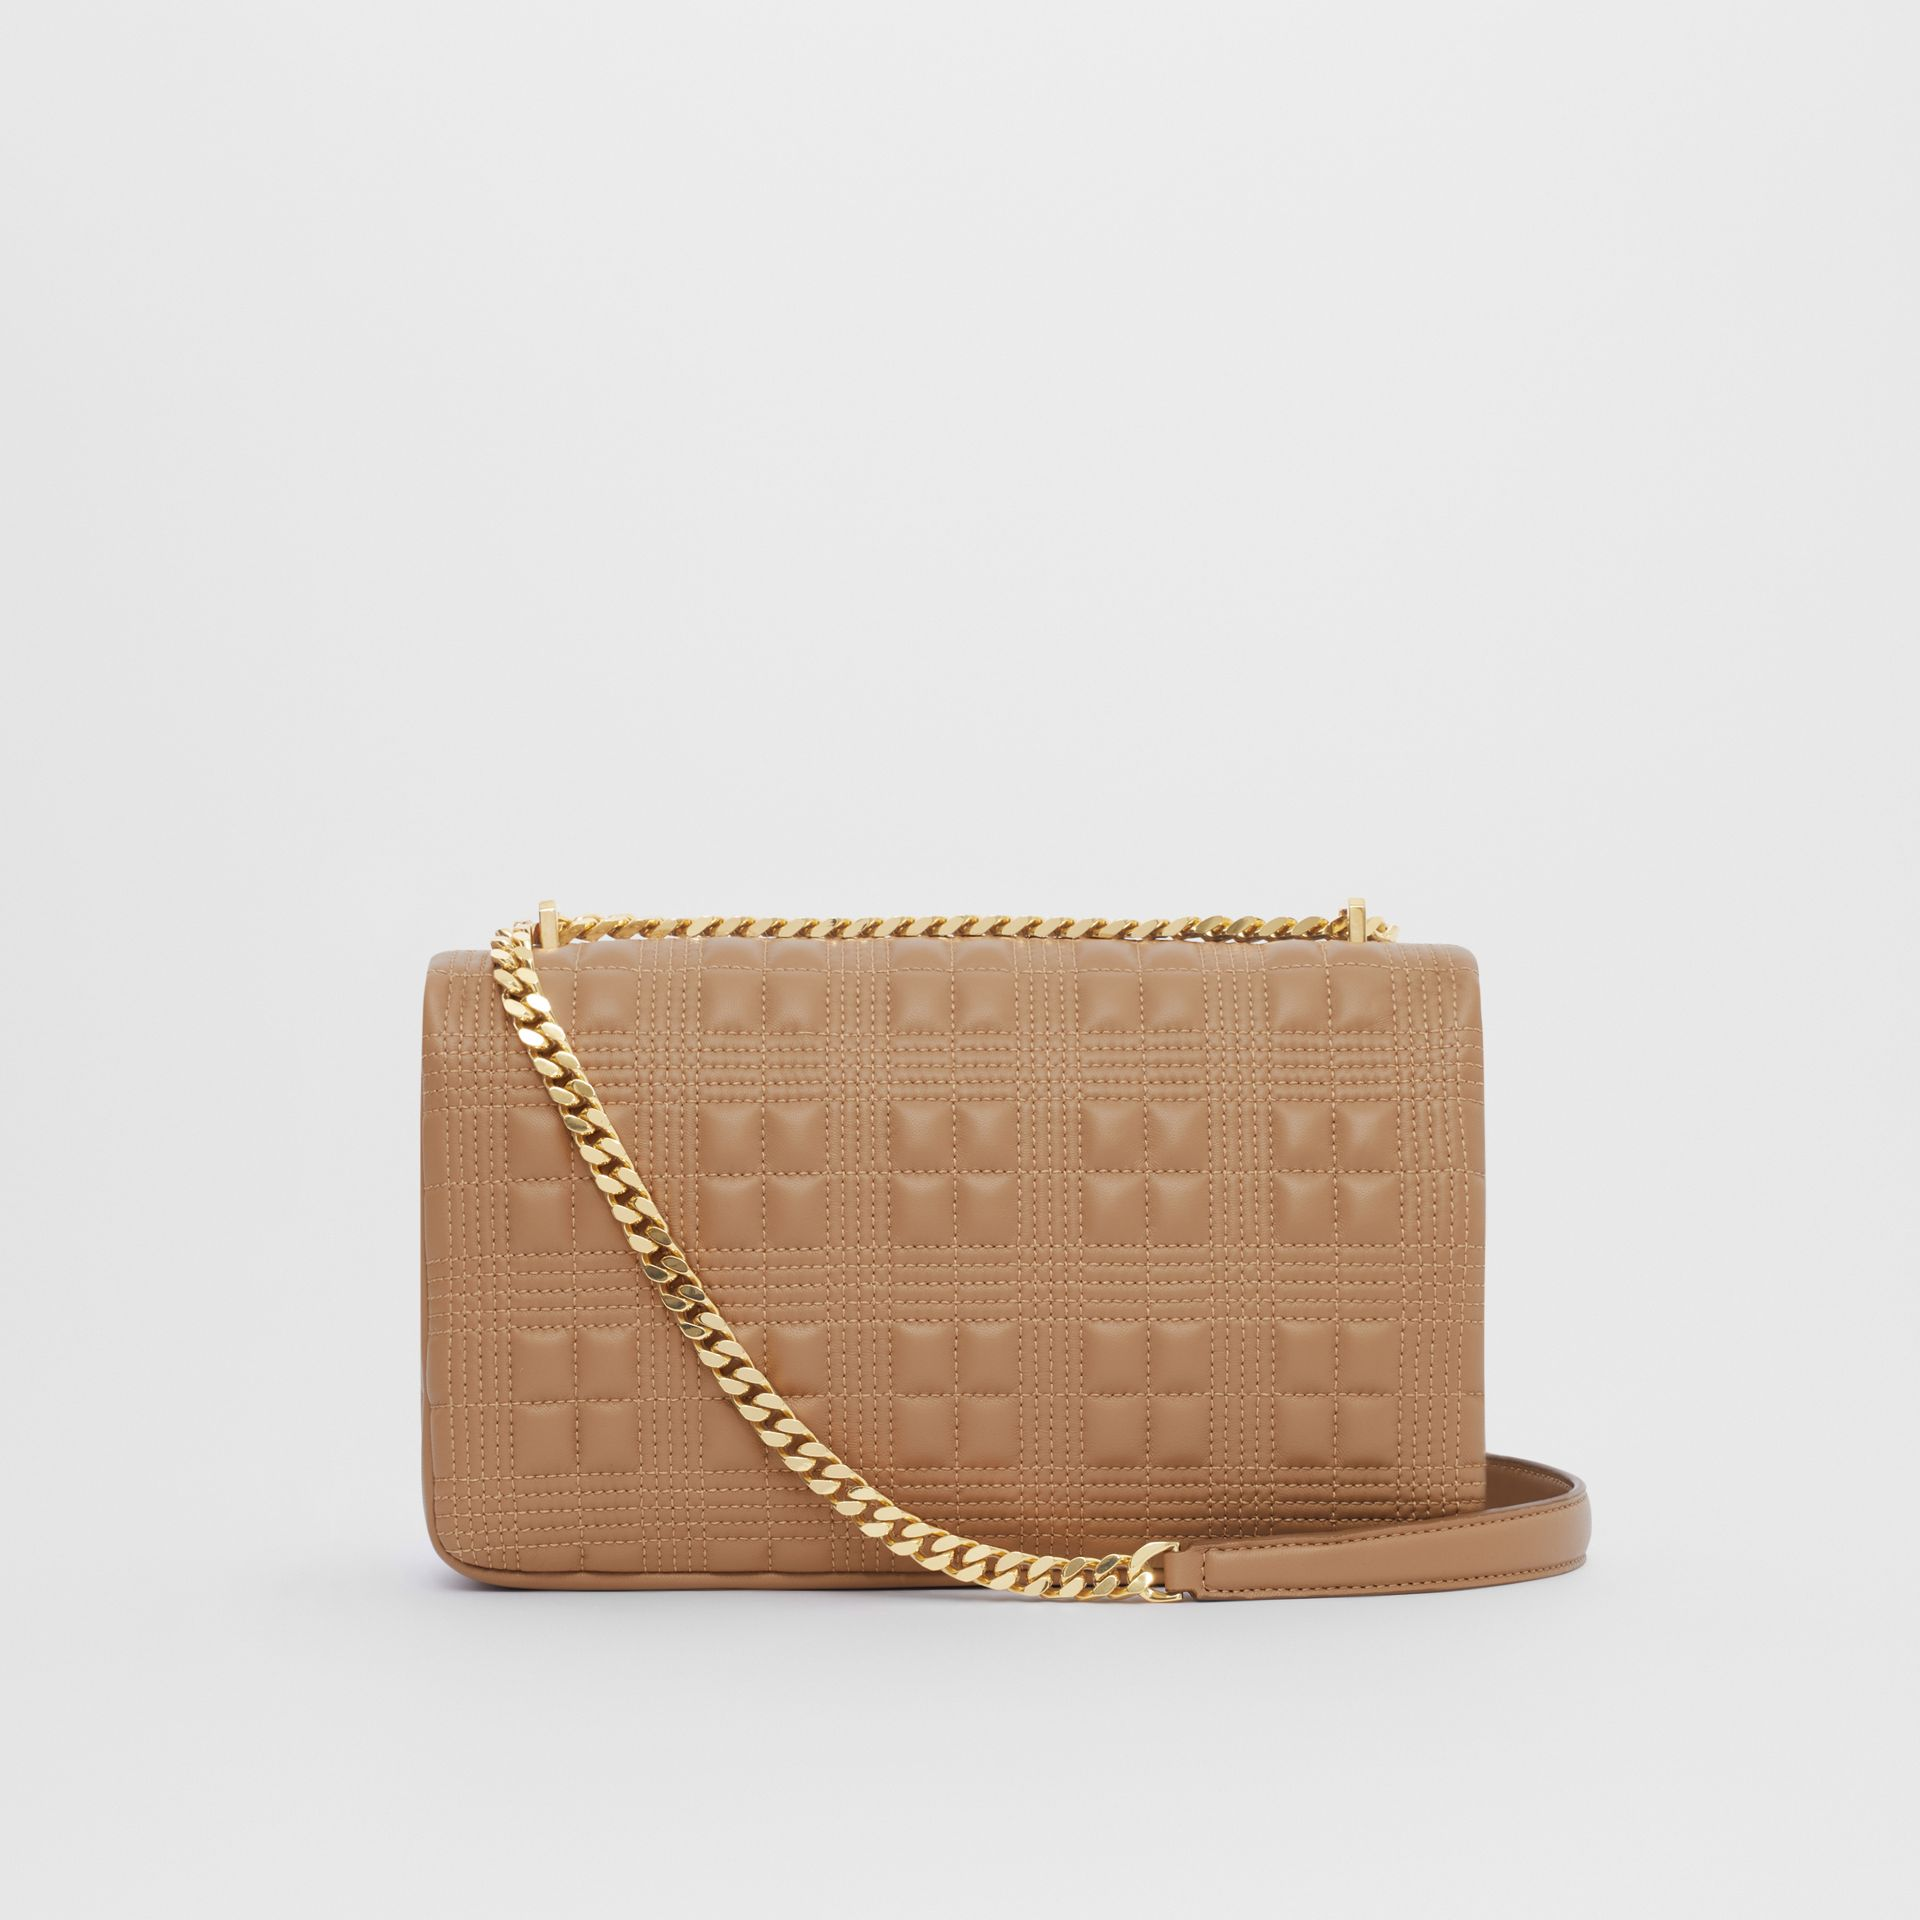 Medium Quilted Lambskin Lola Bag in Camel/light Gold - Women | Burberry - gallery image 7